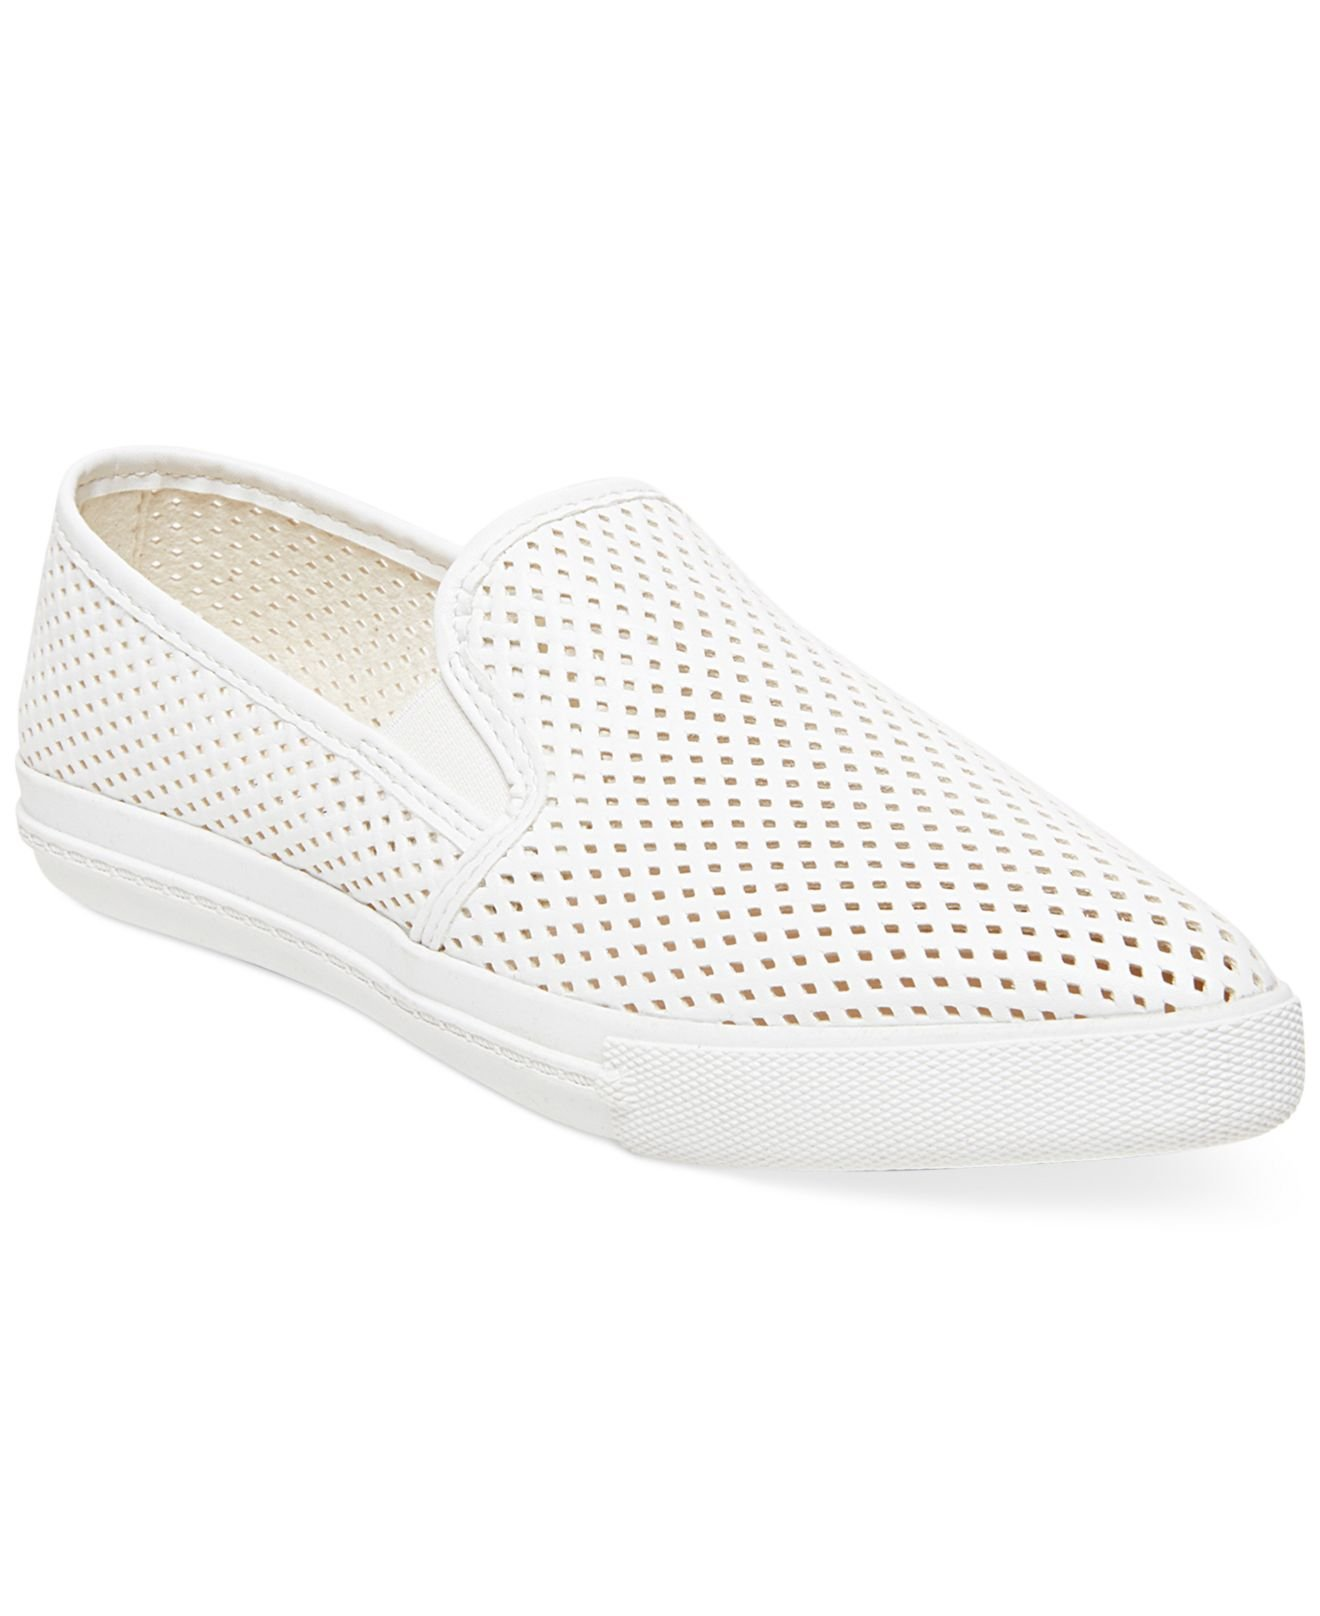 Lyst - Steve Madden Women S Virggo Slip-On Sneakers in White 2e8f39646e